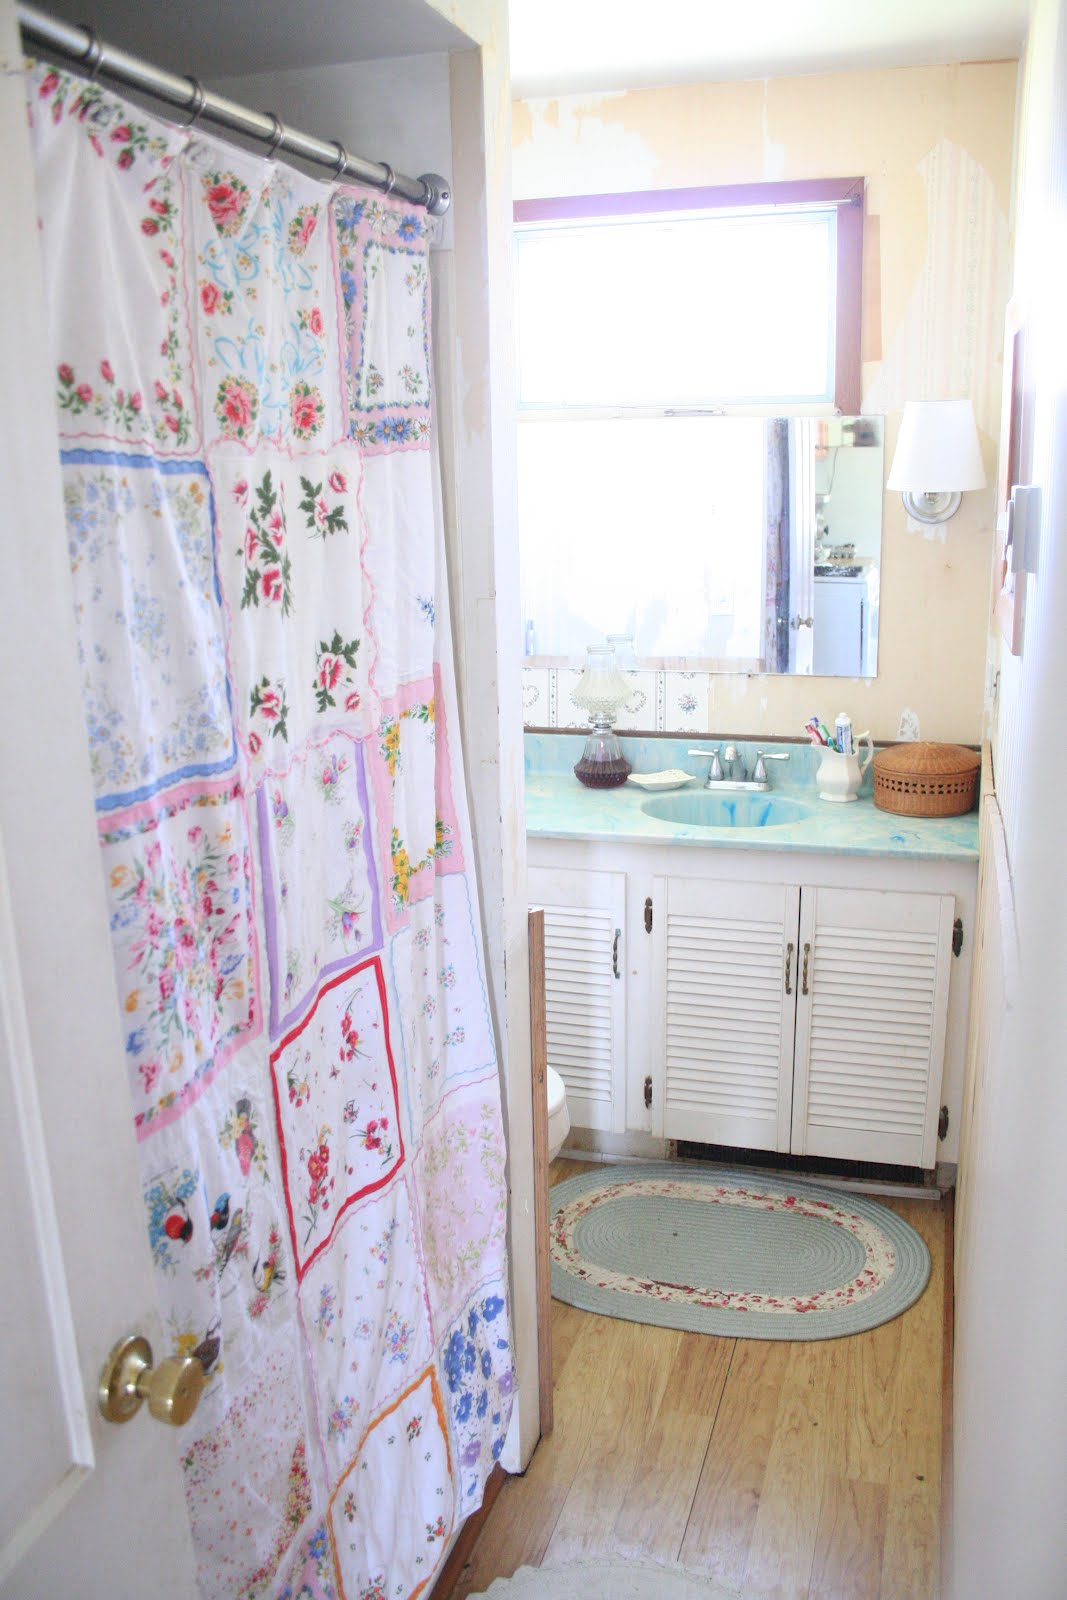 Vintage shower curtains -  Someday When The Thought Of Wallpapering Doesn T Make Me Sweat And Hide In The Corner I Will Wallpaper This Bathroom Maybe